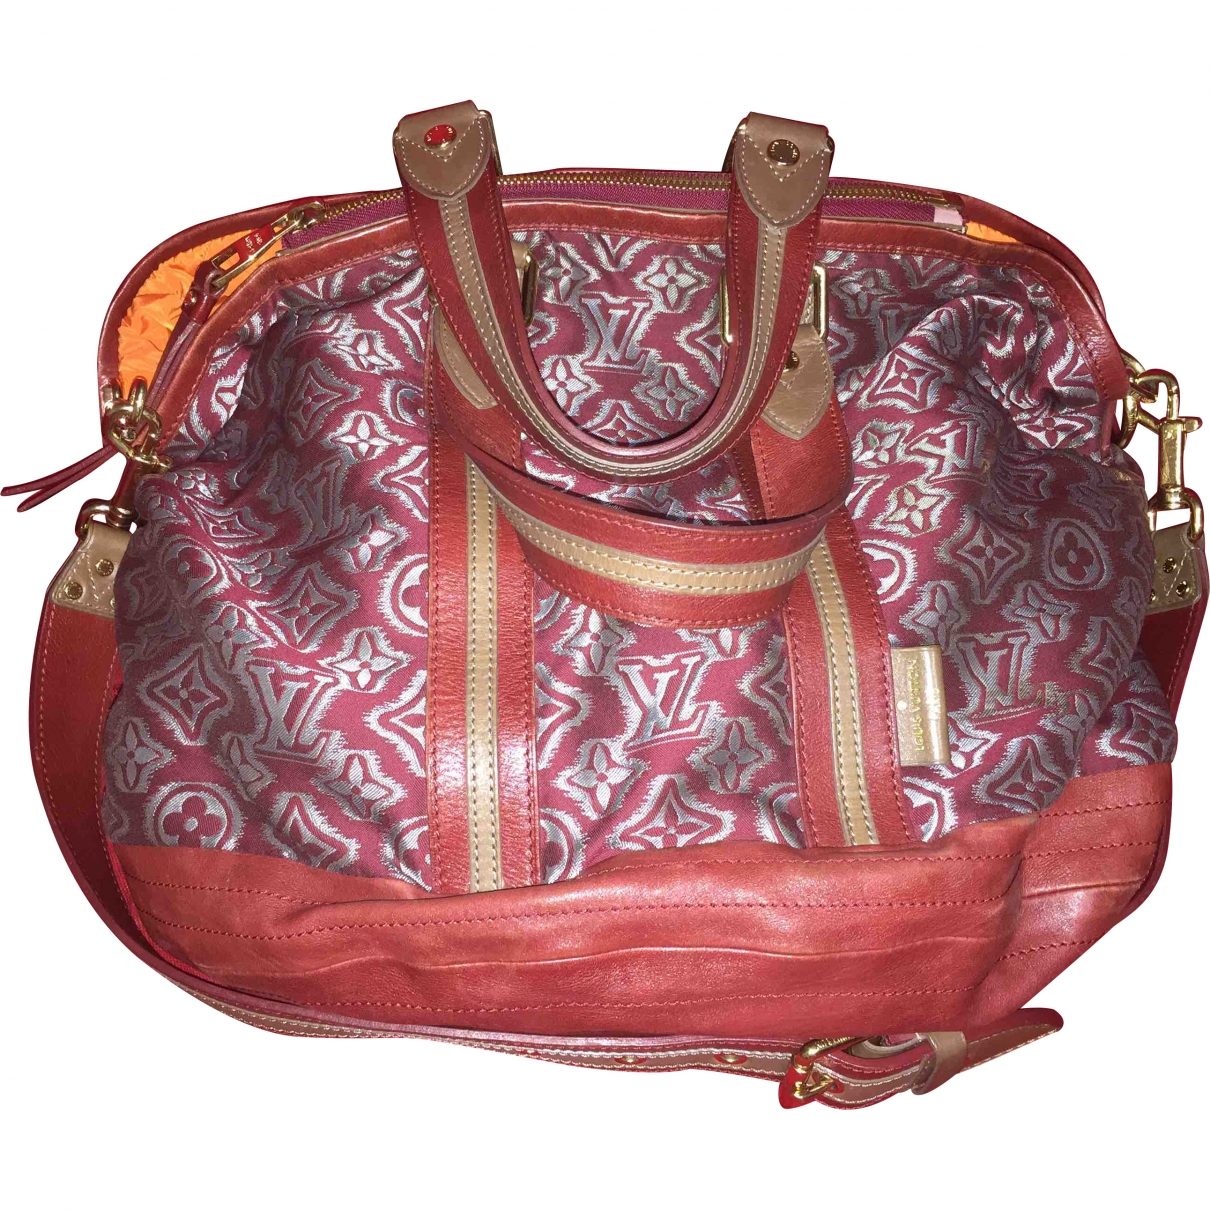 Louis Vuitton \N Red Cotton handbag for Women \N